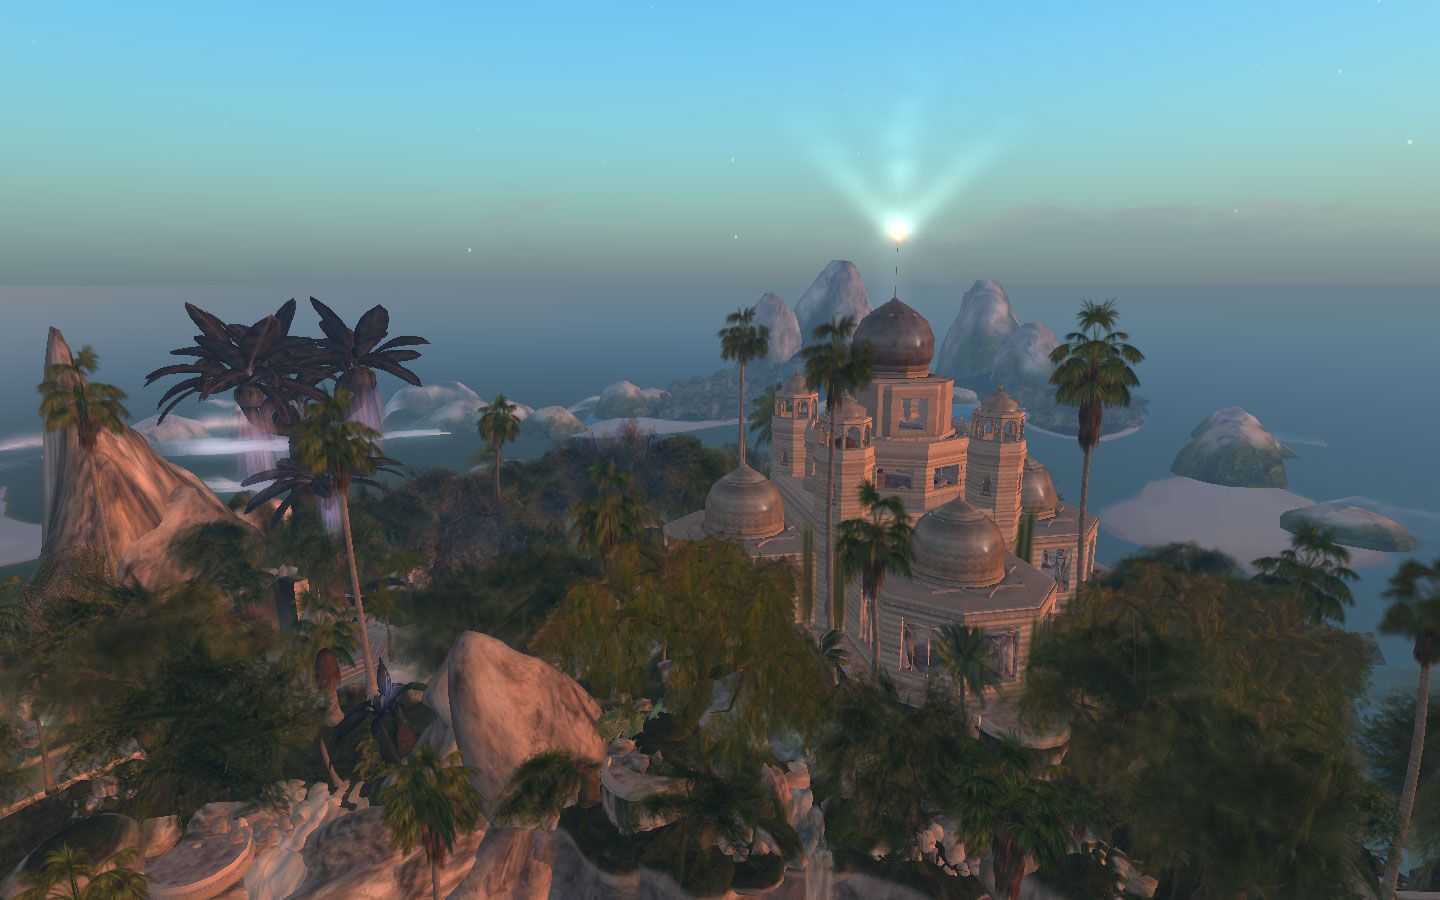 The Best Games Like Second Life Top Alternatives in 2018